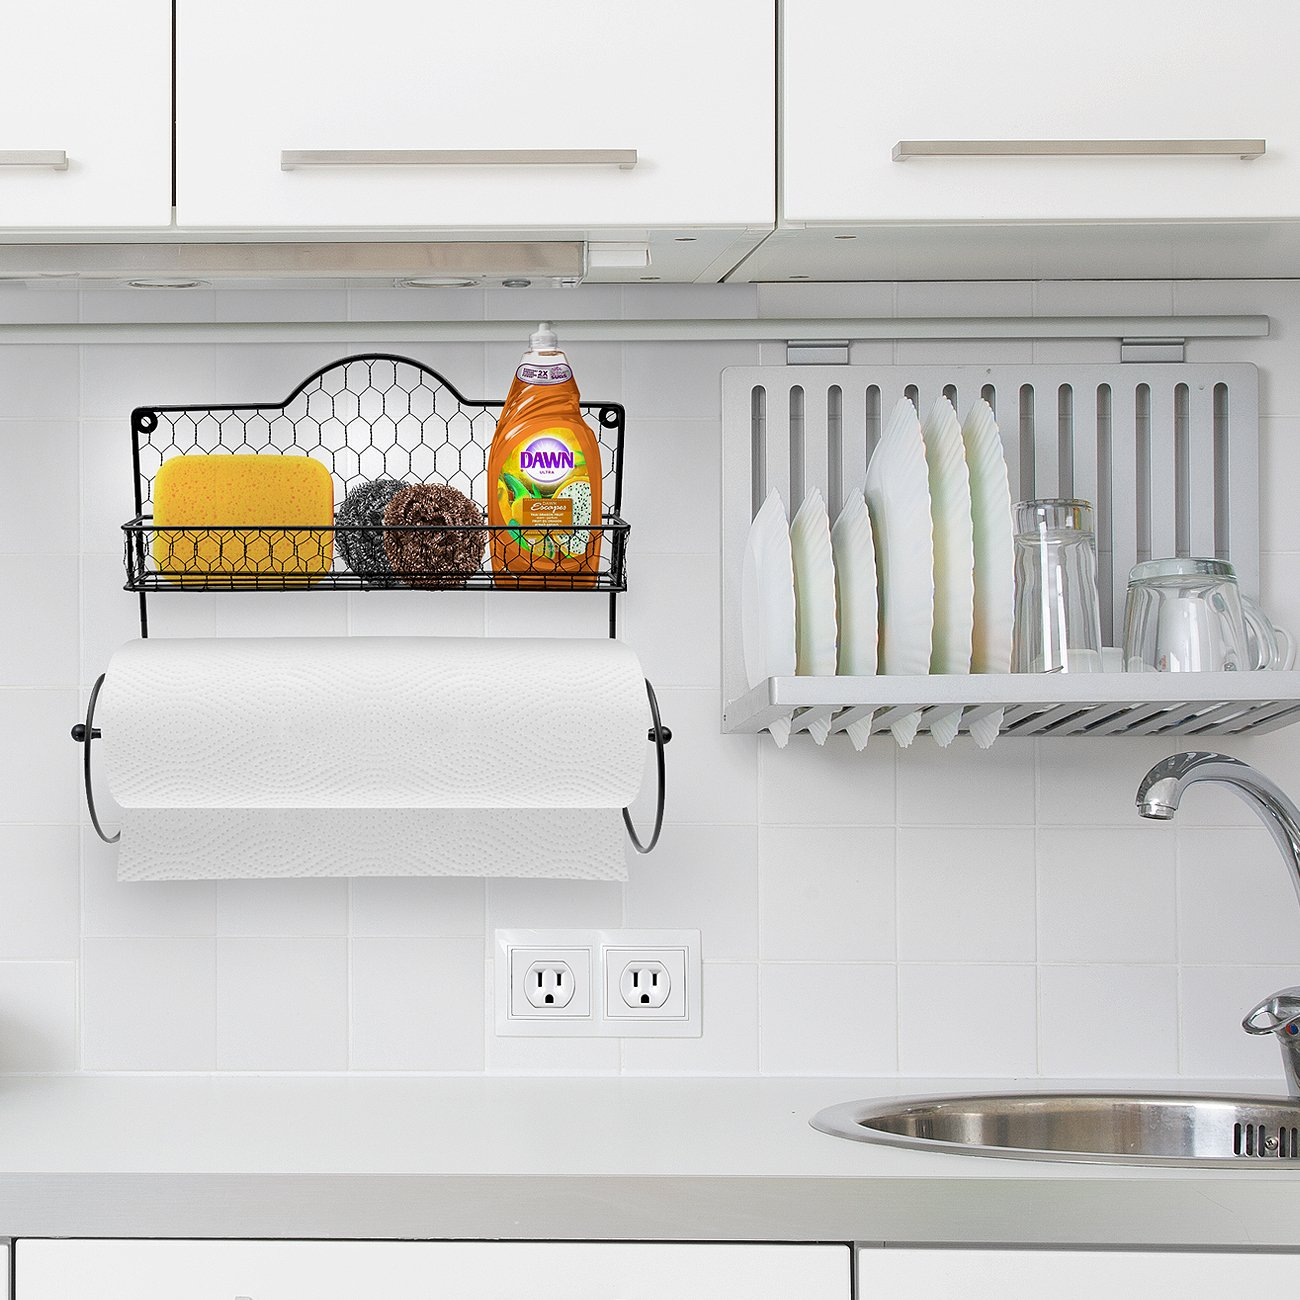 Sorbus Paper Towel Holder, Spice Rack and Multi-Purpose Shelf—Wall Mounted Storage for Kitchen Accessories, Towels, Toiletries, Supplies, etc.—Ideal for Kitchen/Bathroom—Made of Steel (Black) by Sorbus (Image #4)